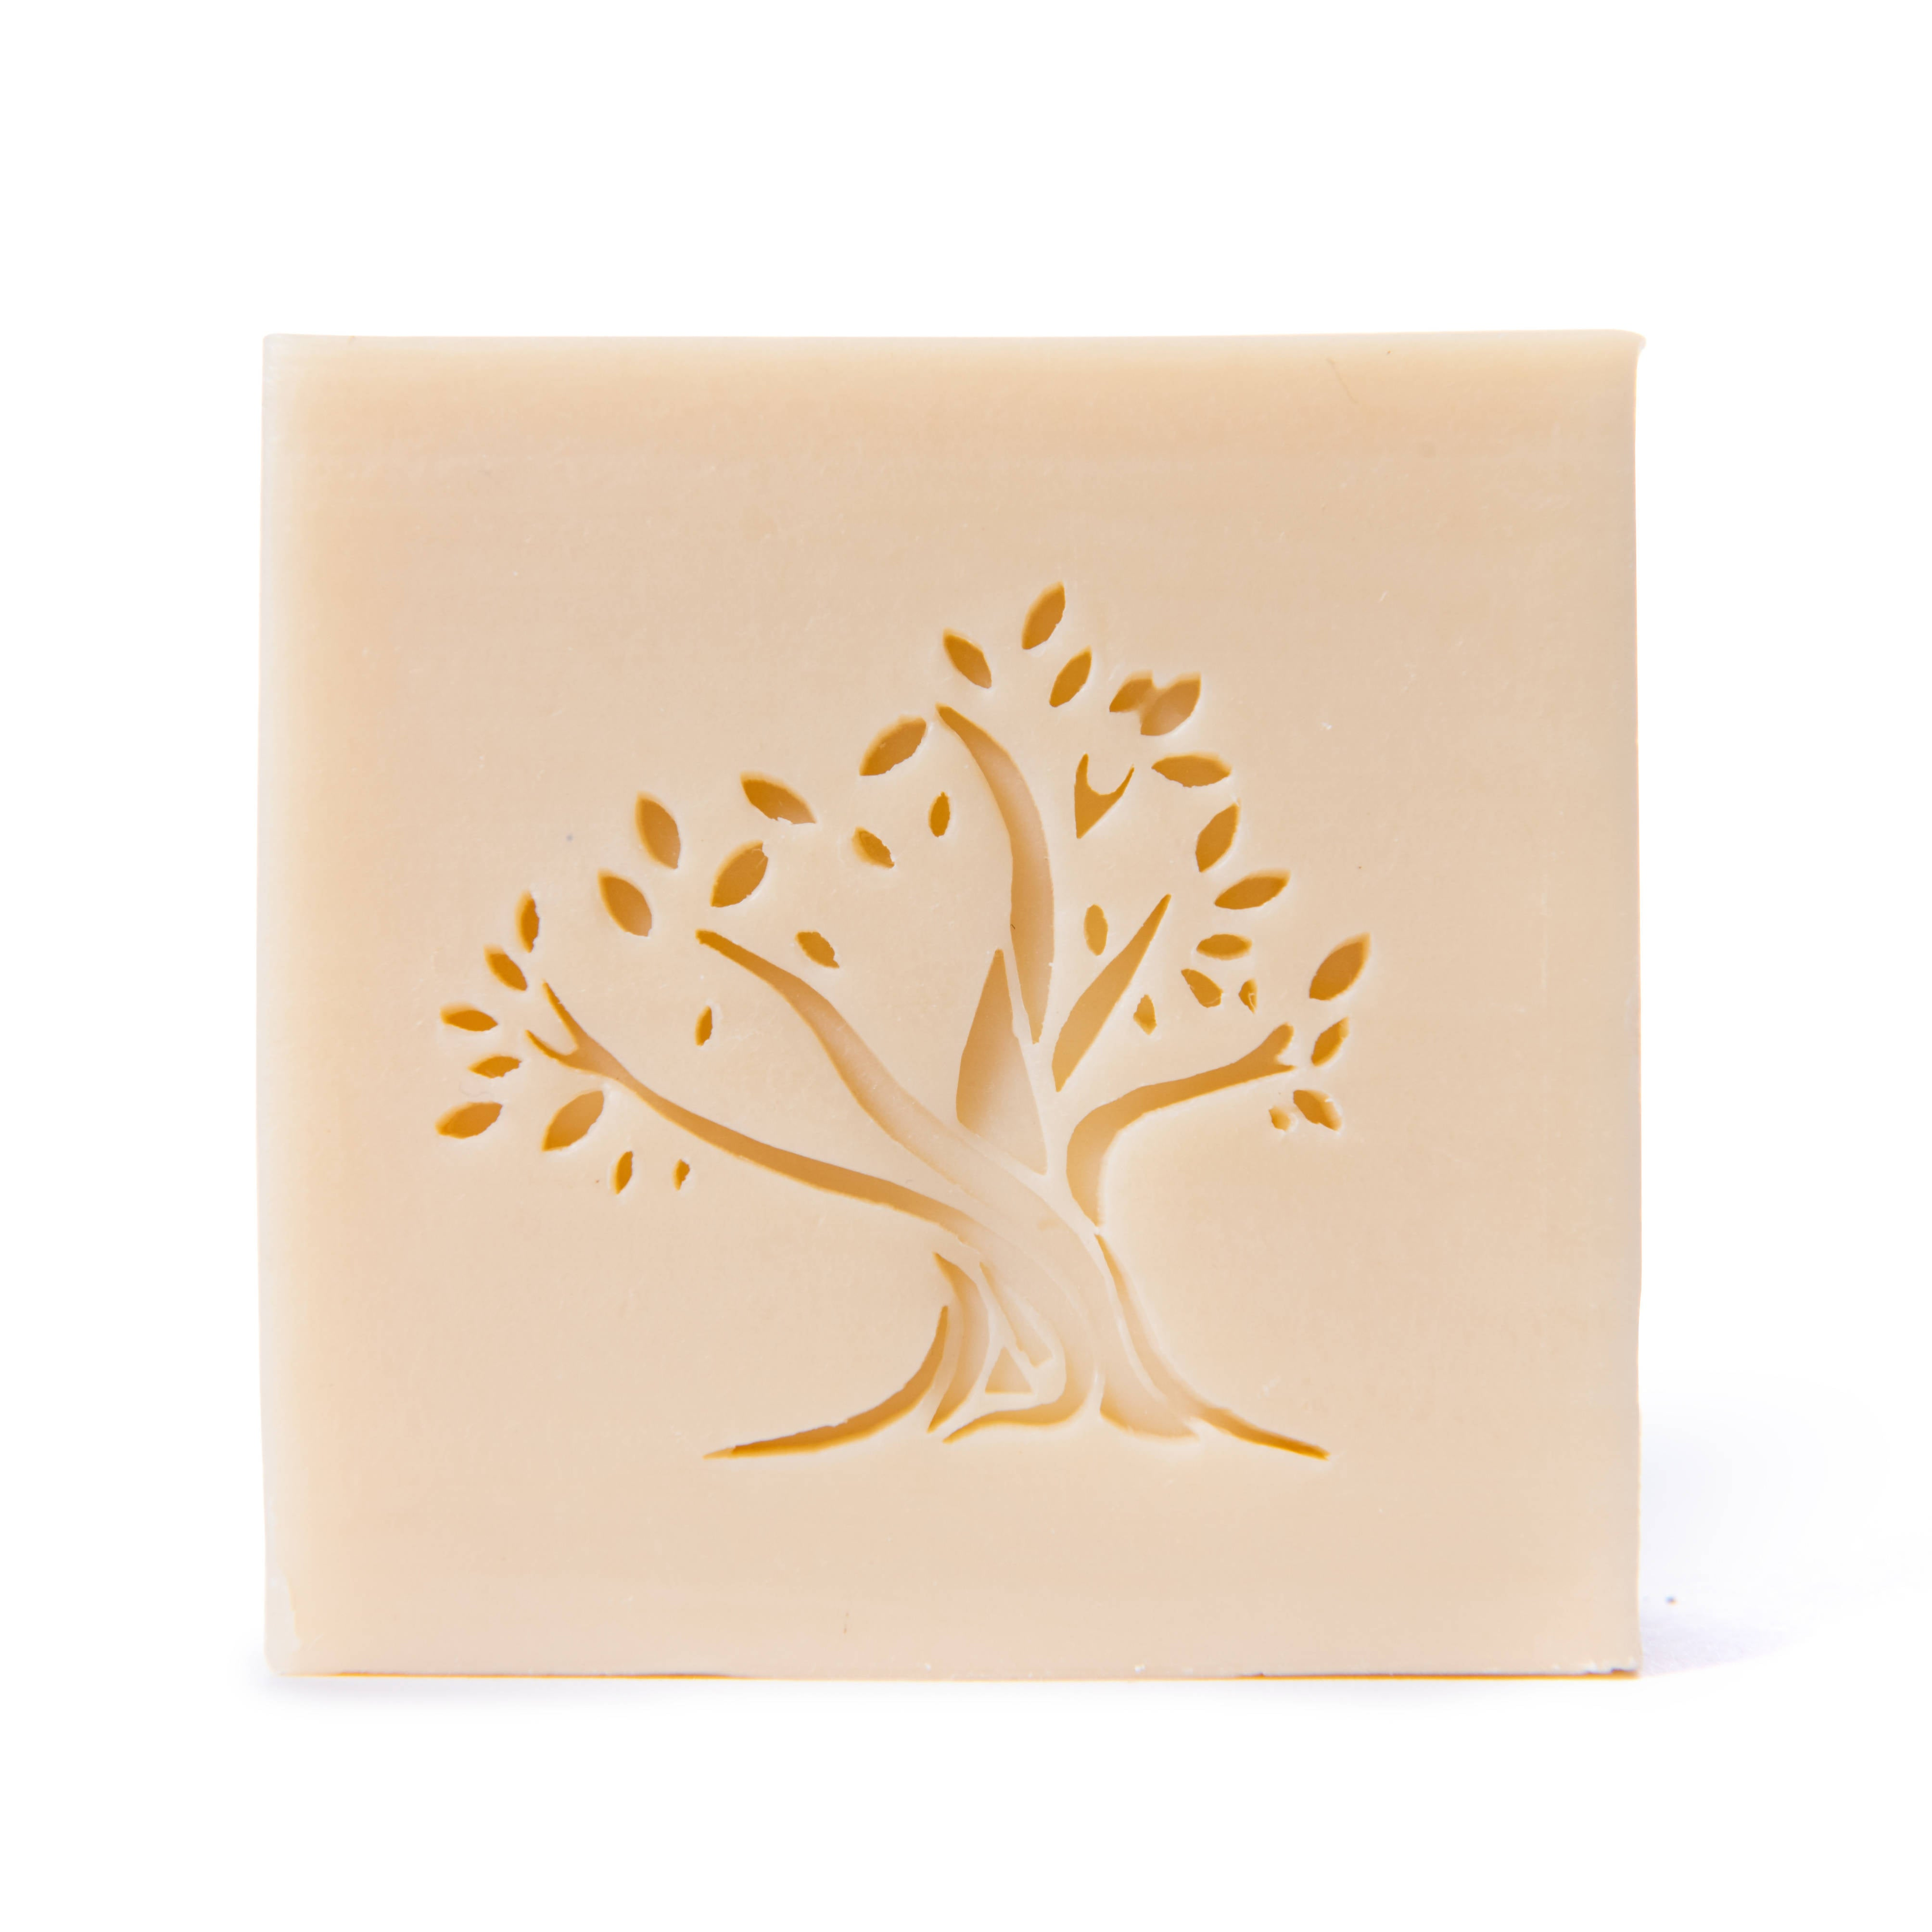 Handcrafted Handmade Hand Stamped artisanal soap ancestral recipe